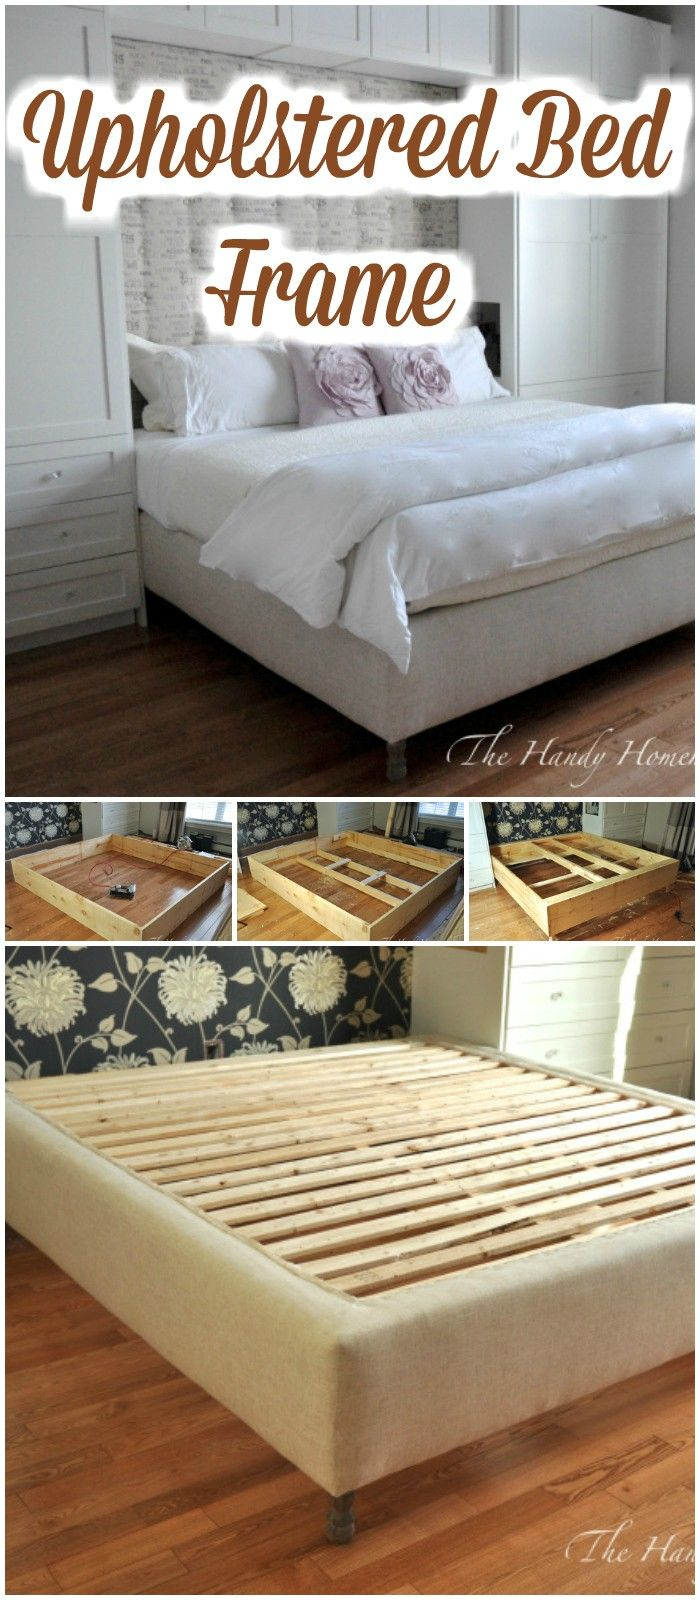 Upholstered Bed Frame:I have presented a list of DIY bed frame to make your bedroom fabulous. All of them are easy and cheap and fit your budget.